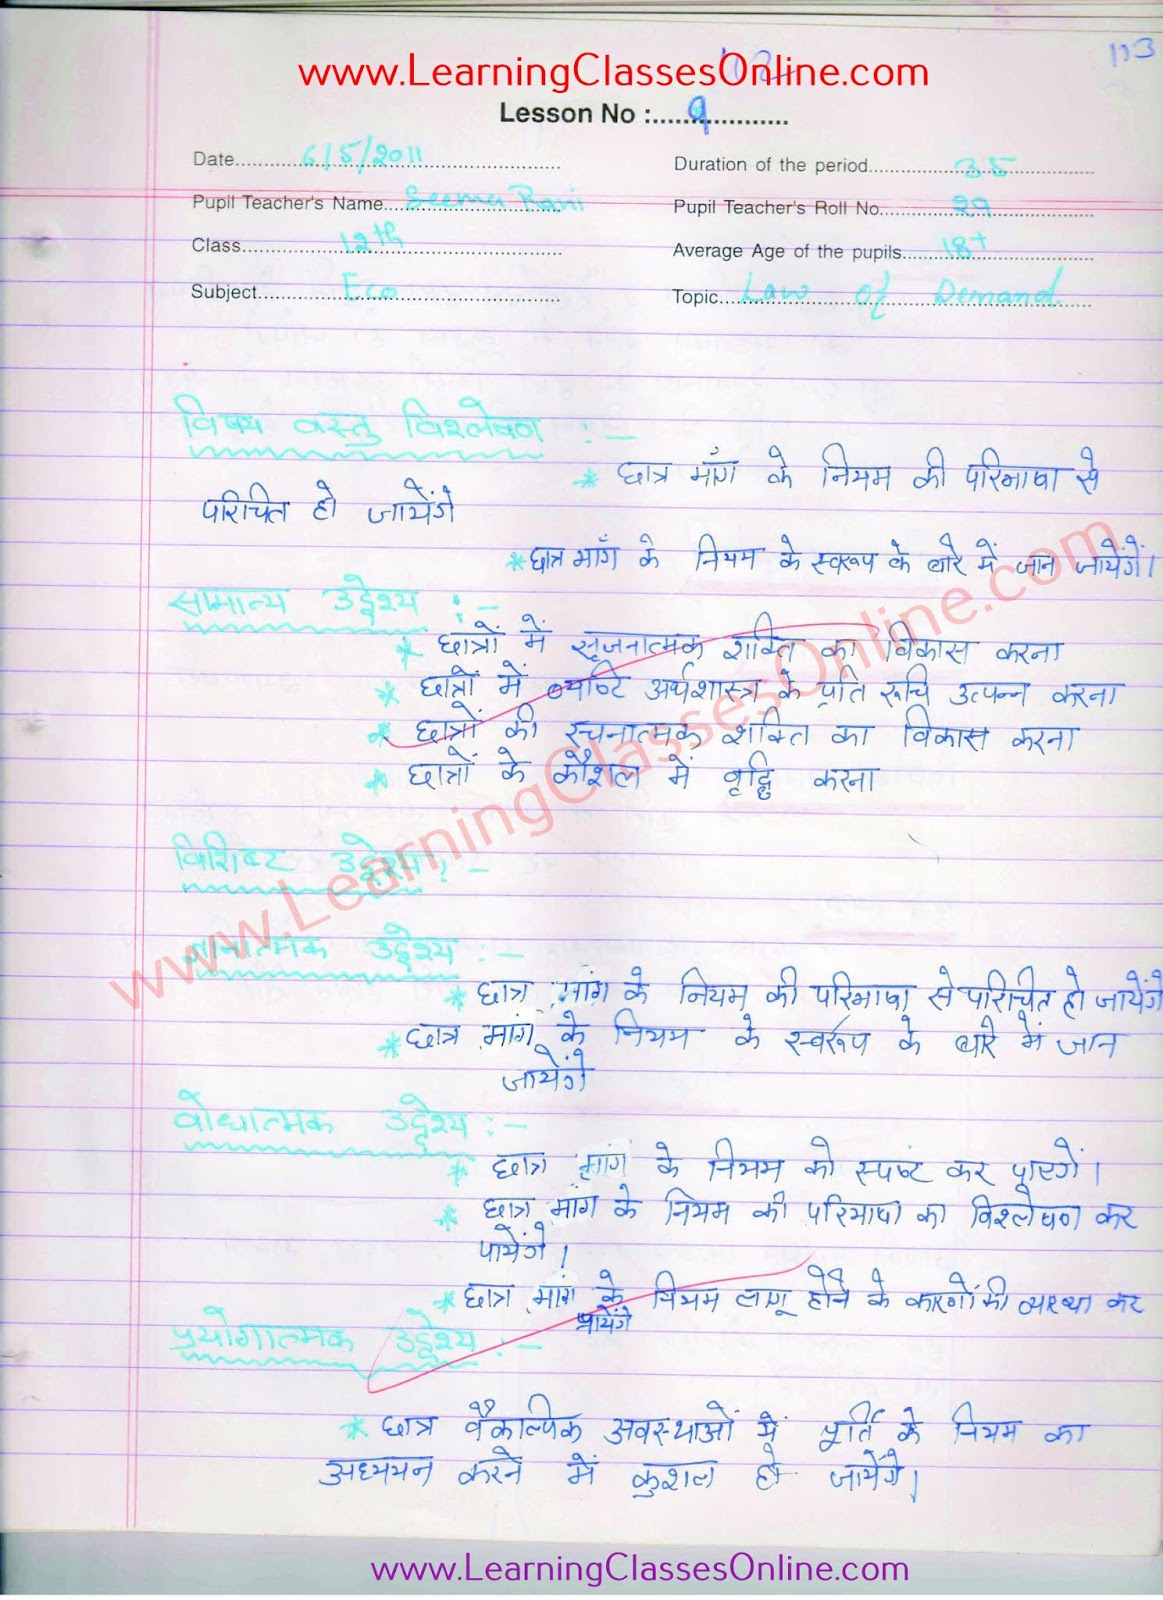 Real School Teaching Economics Lesson Plan in Hindi for class 10th on Law of Demand (  मांग के नियम ) pdf download free